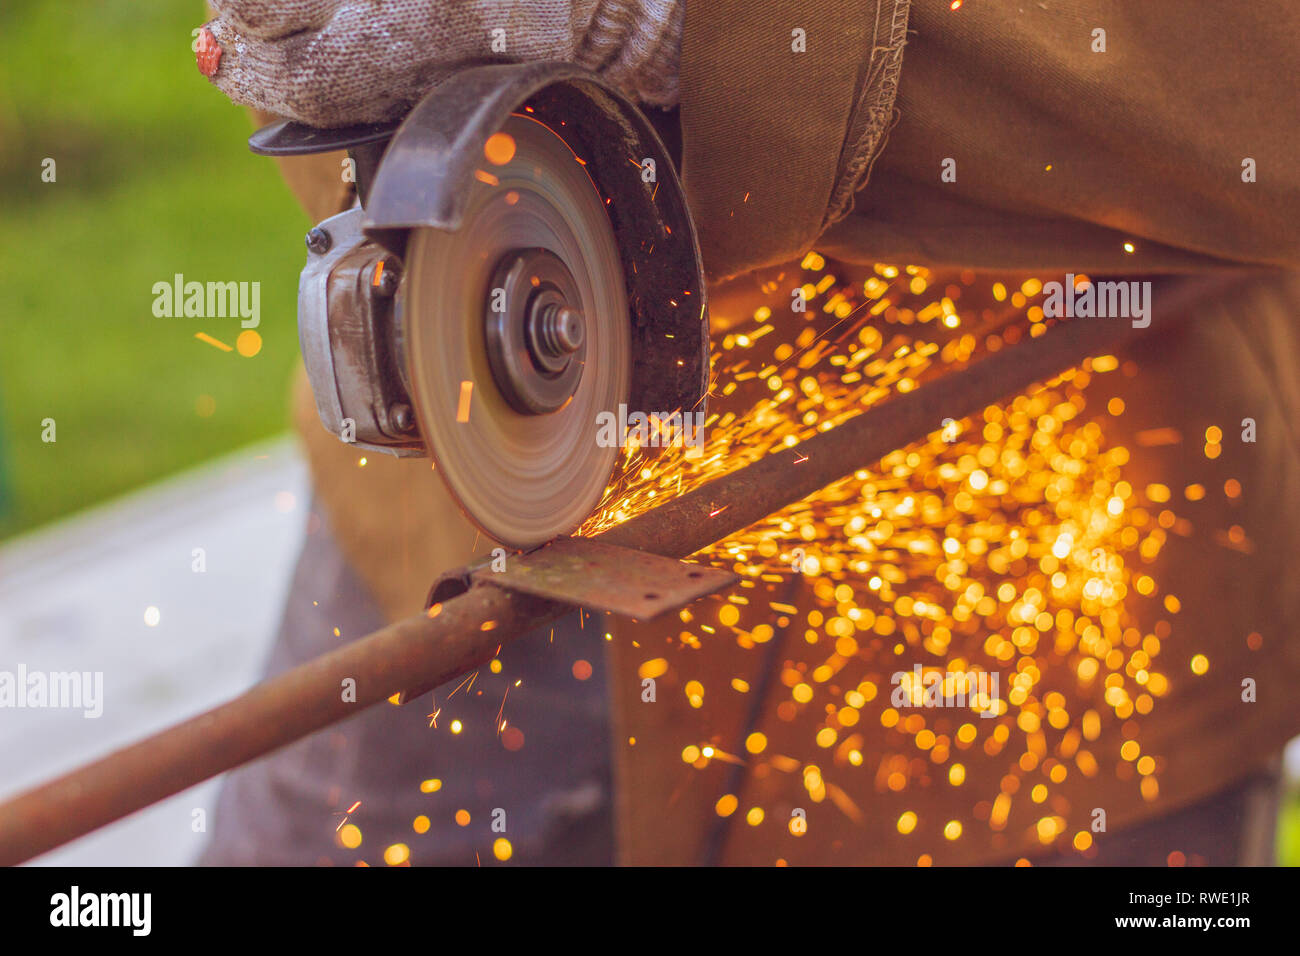 Cutting blade grinder close-up with flying sparks from the metal during the cutting process - Stock Image